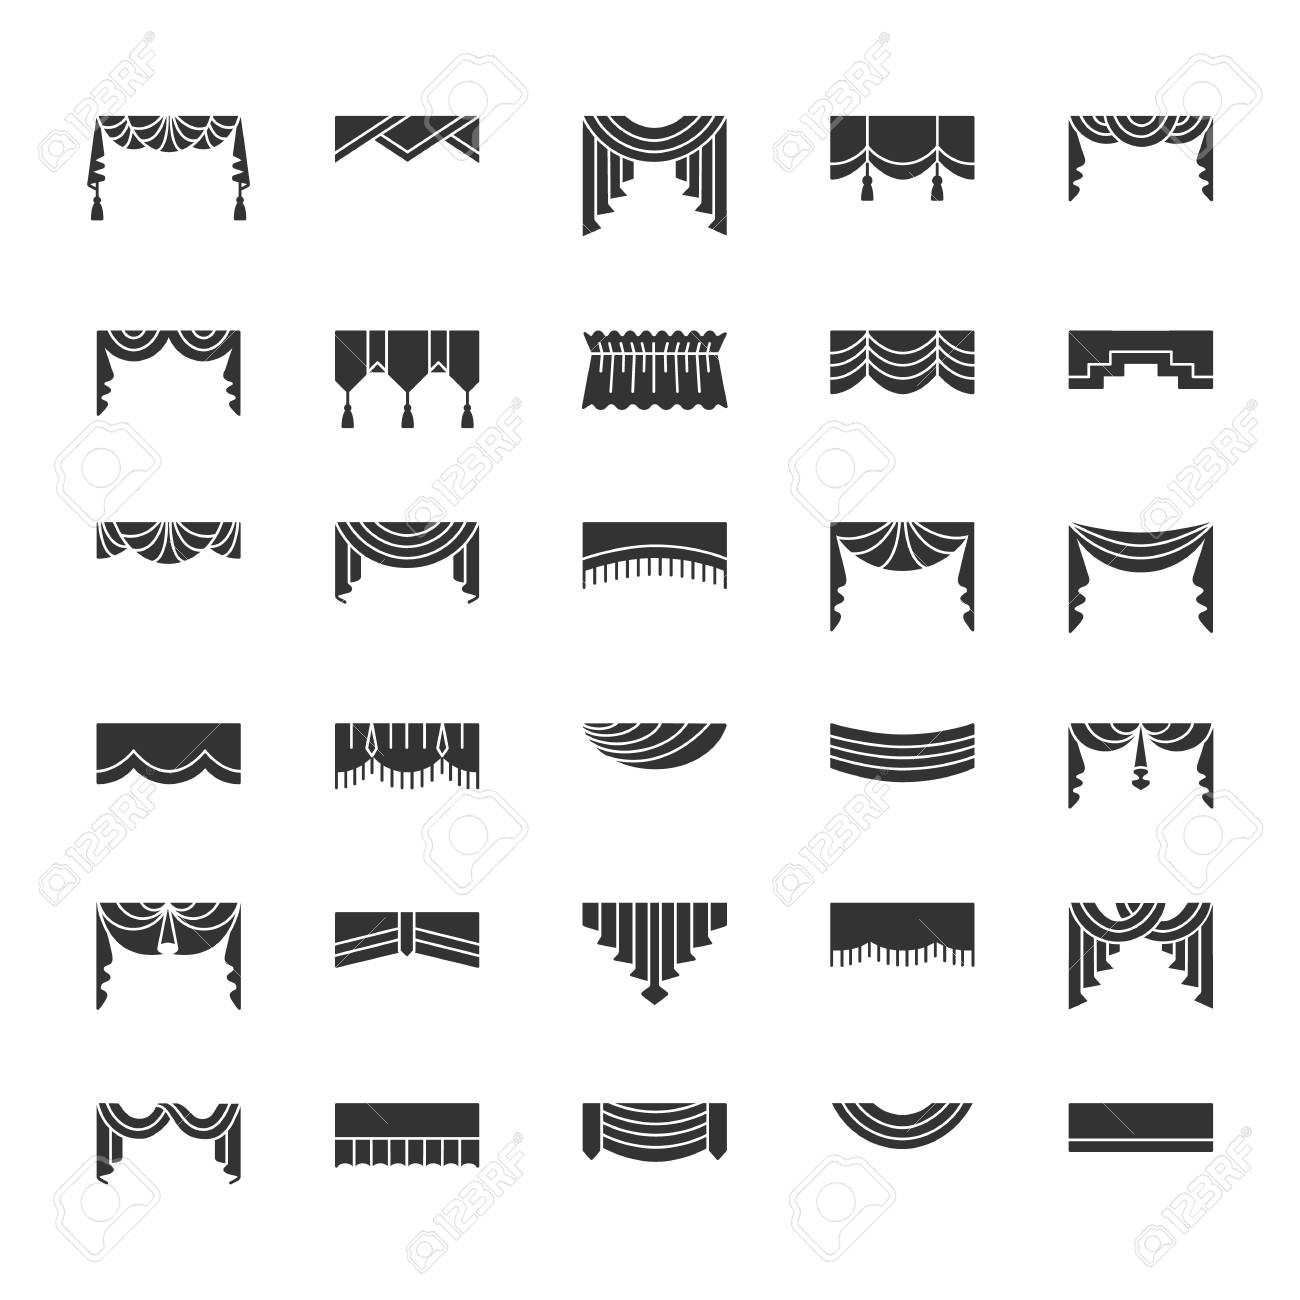 Scarves & valances. Window top treatments. Different styles of draperies and blinds. Swag, fan, straight, scalloped, pleat pelmets. Vector flat icons. Isolated objects on white background. - 104726292